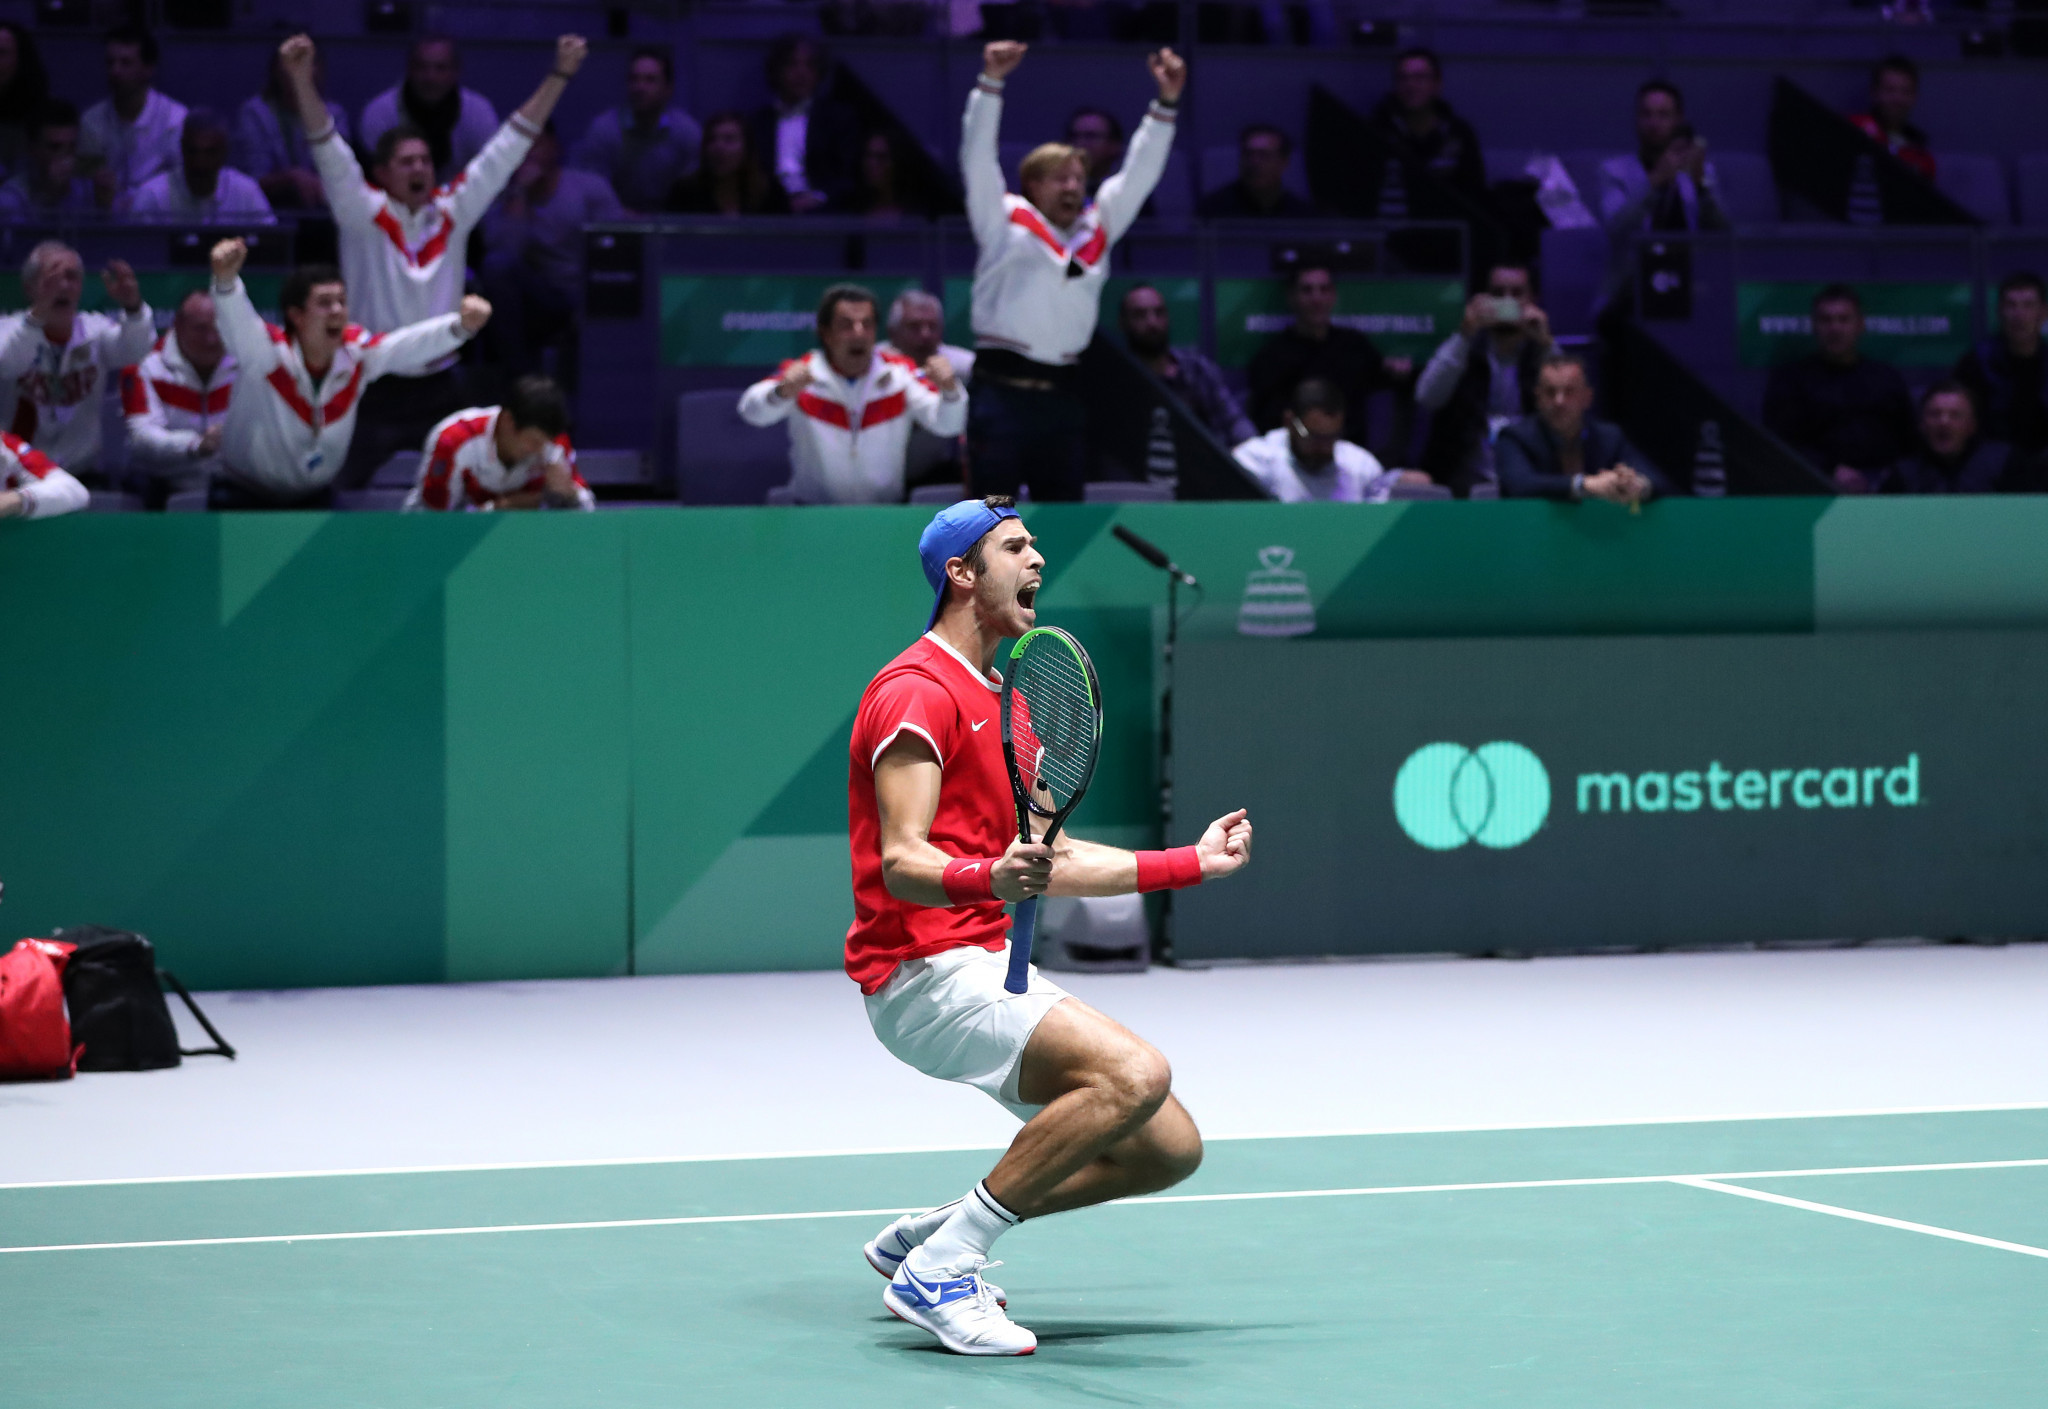 Russia clinch semi-final place after dramatic Davis Cup win over Serbia